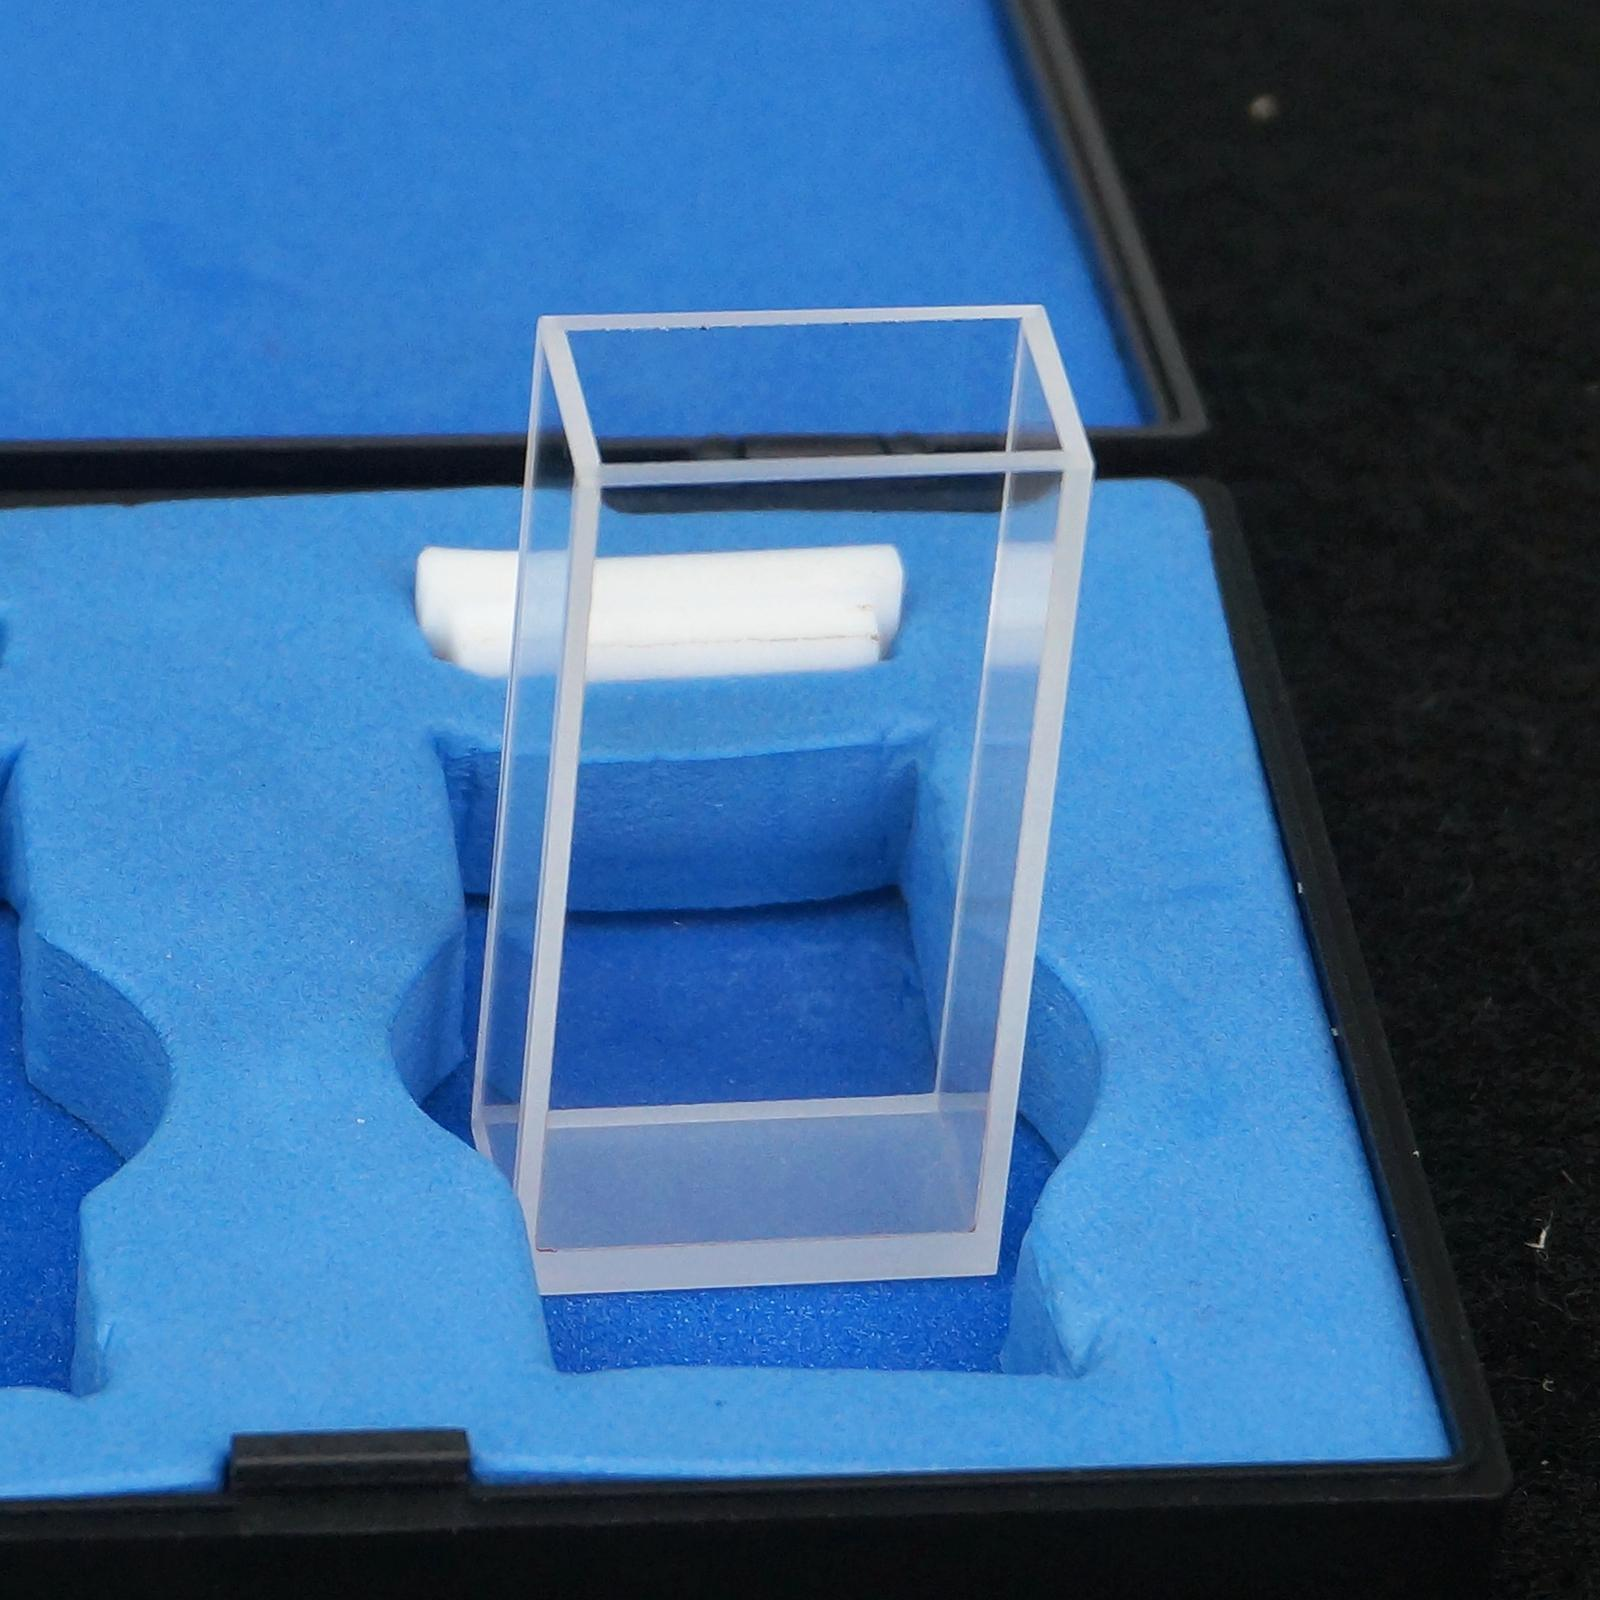 20mm Path Length JGS1 Quartz Cuvette Cell With Telfon Lid For Uv Spectrophotometers ...